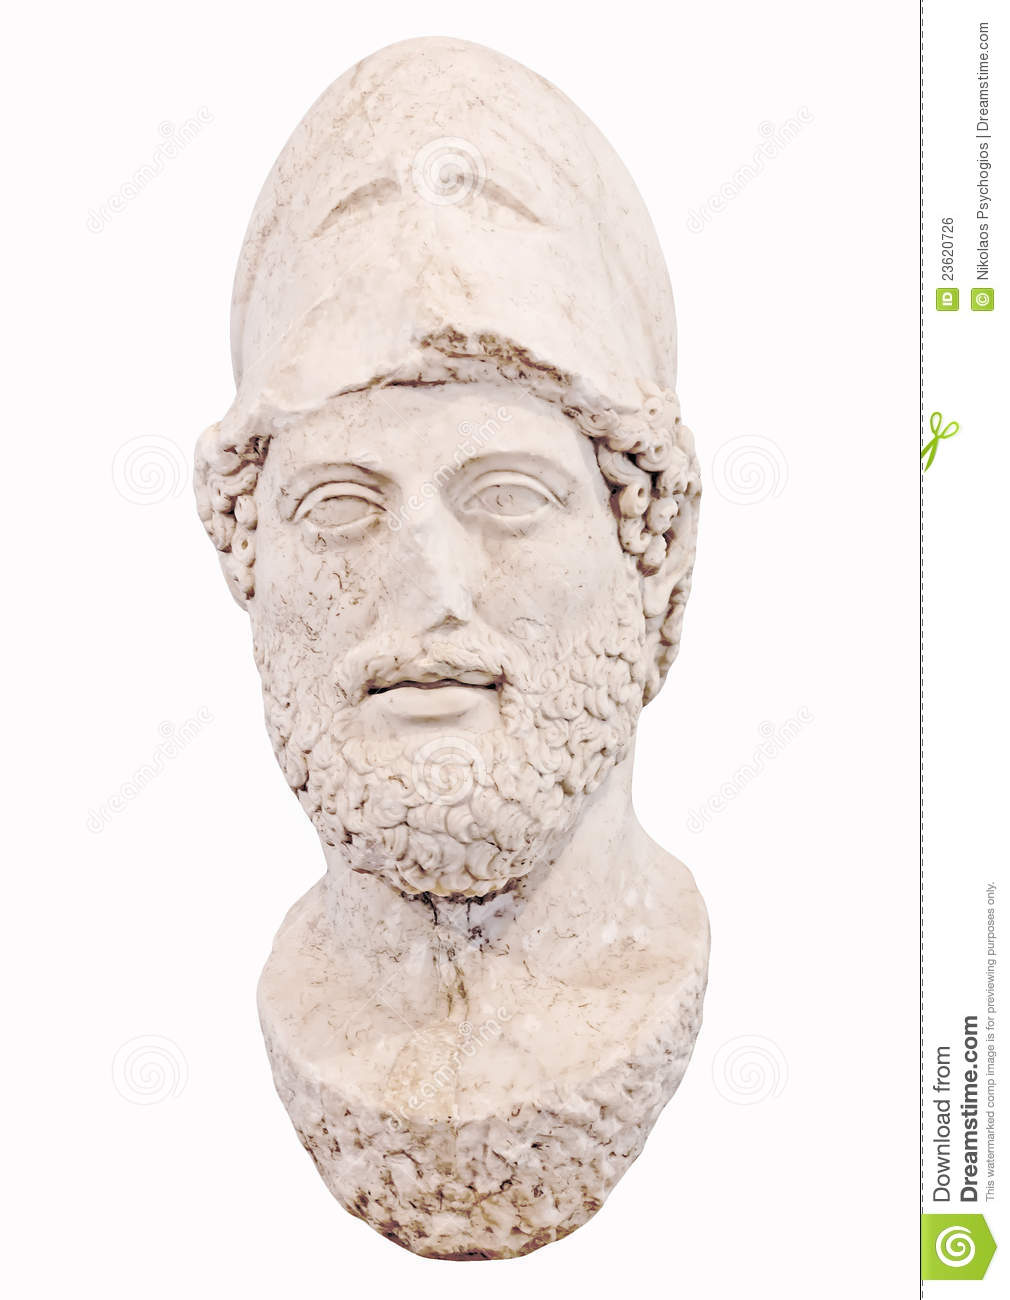 pericles and athens Pericles definition: athenian statesman whose leadership contributed to athens' political and cultural supremacy in greece he ordered the.